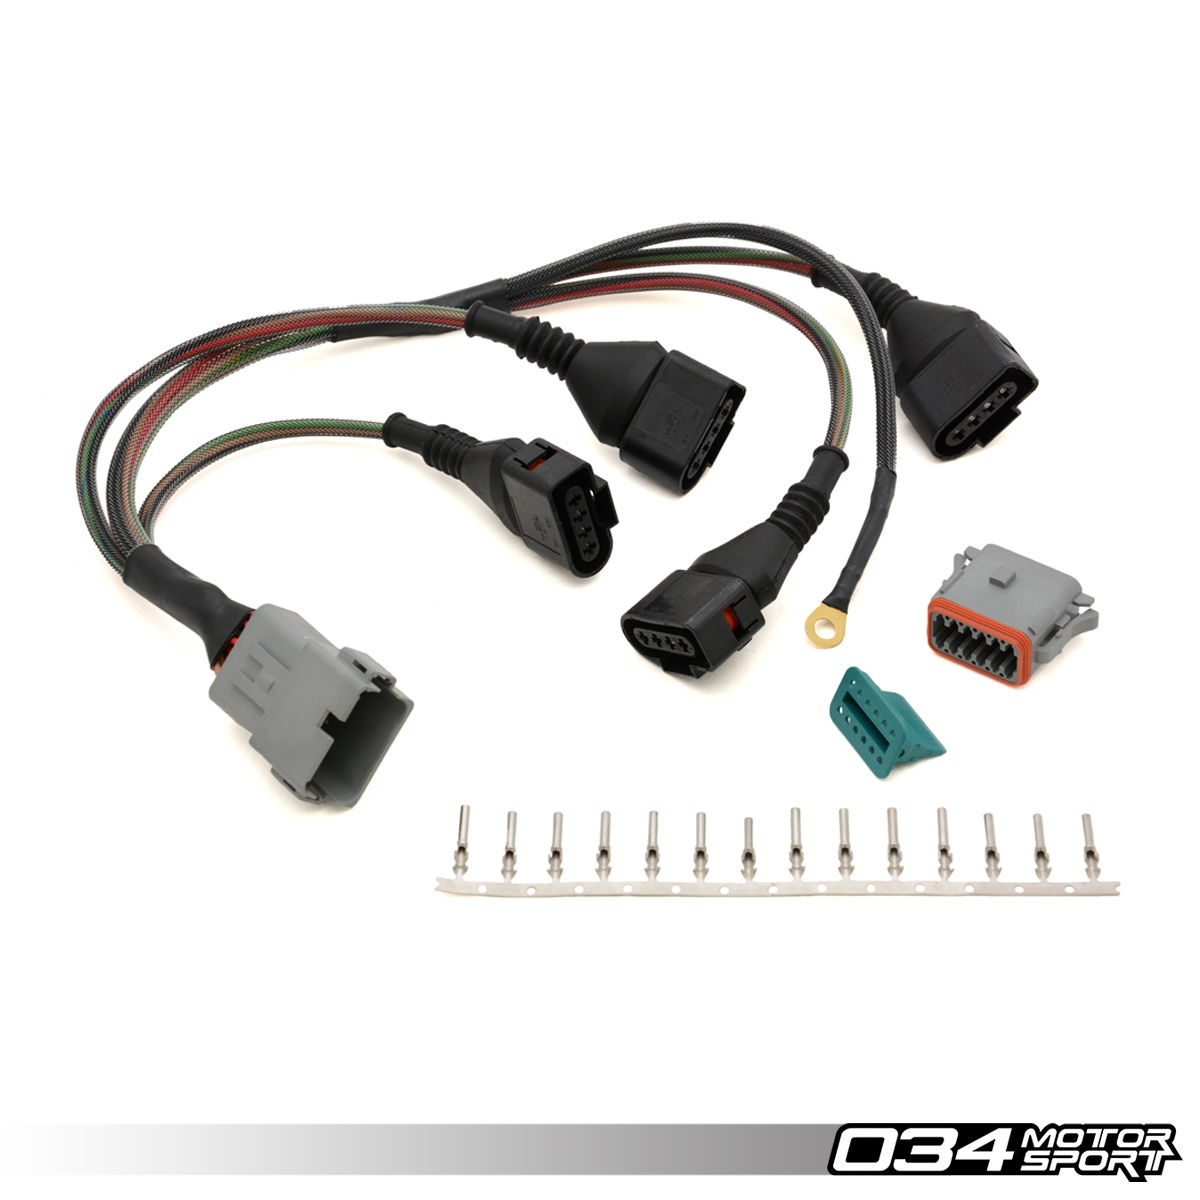 hight resolution of repair update harness audi volkswagen 1 8t with 4 wire coils 034 wire harness building